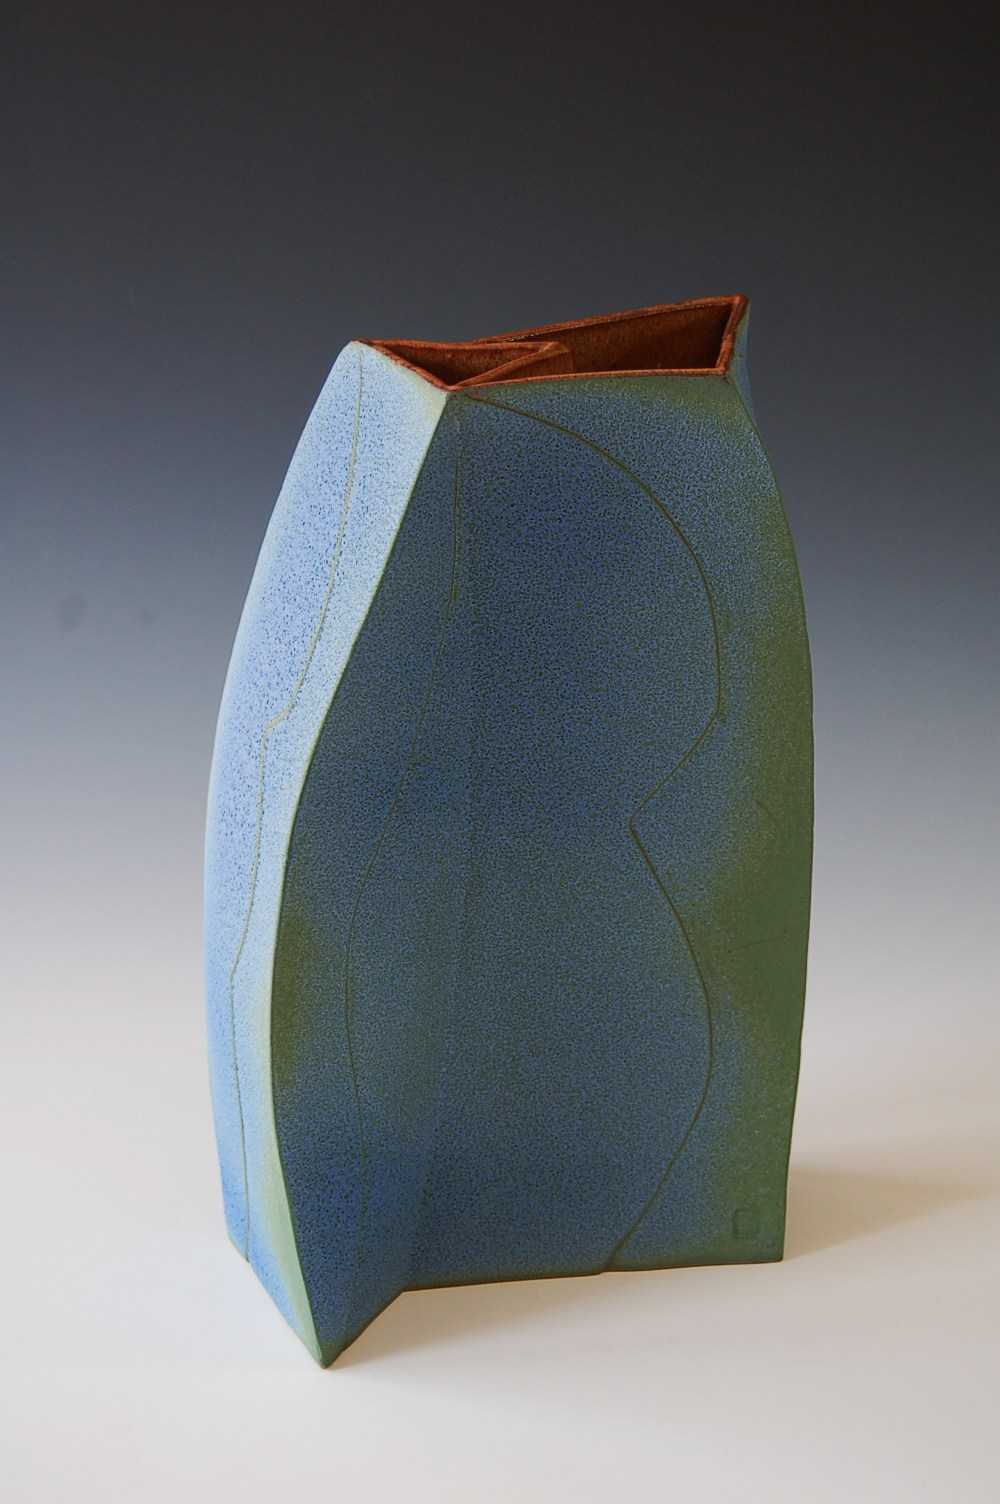 Coastal Carolina Clay Guild Holiday Show and Sale